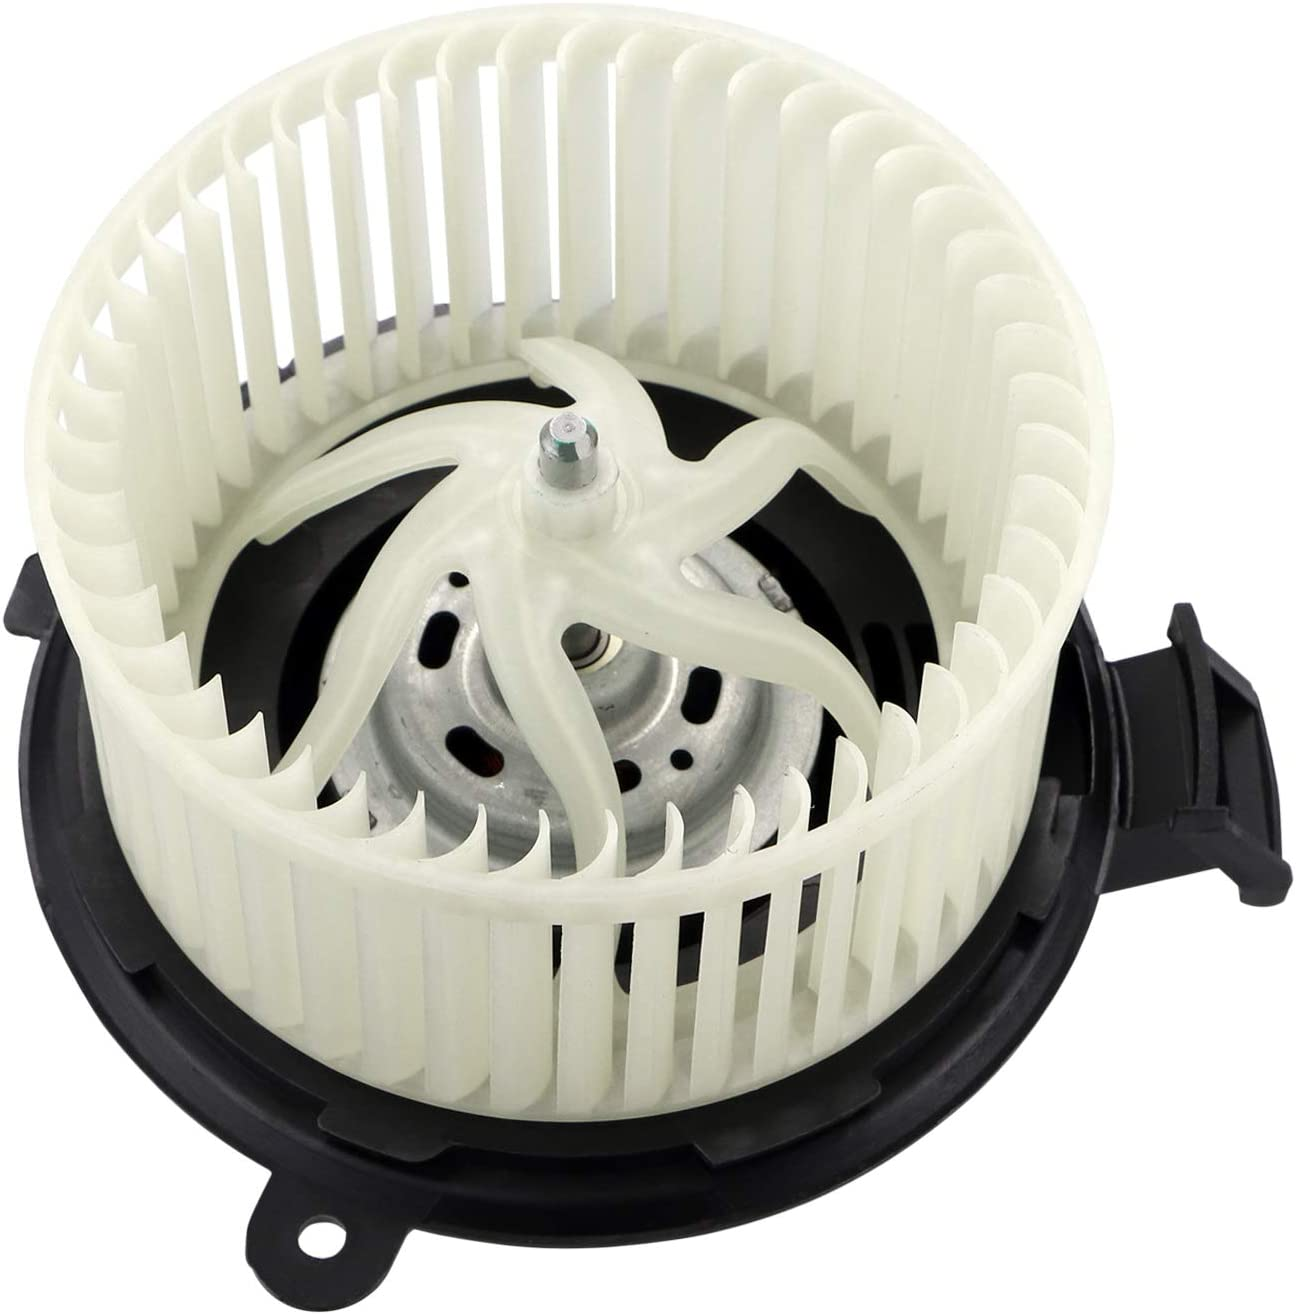 GMC Sierra 1500//Acadia Saturn Outlook for 07-13 Chevy Silverado 1500 2500HD 3500HD//Traverse Buick Enclave HVAC Blower Motor Assembly 700236